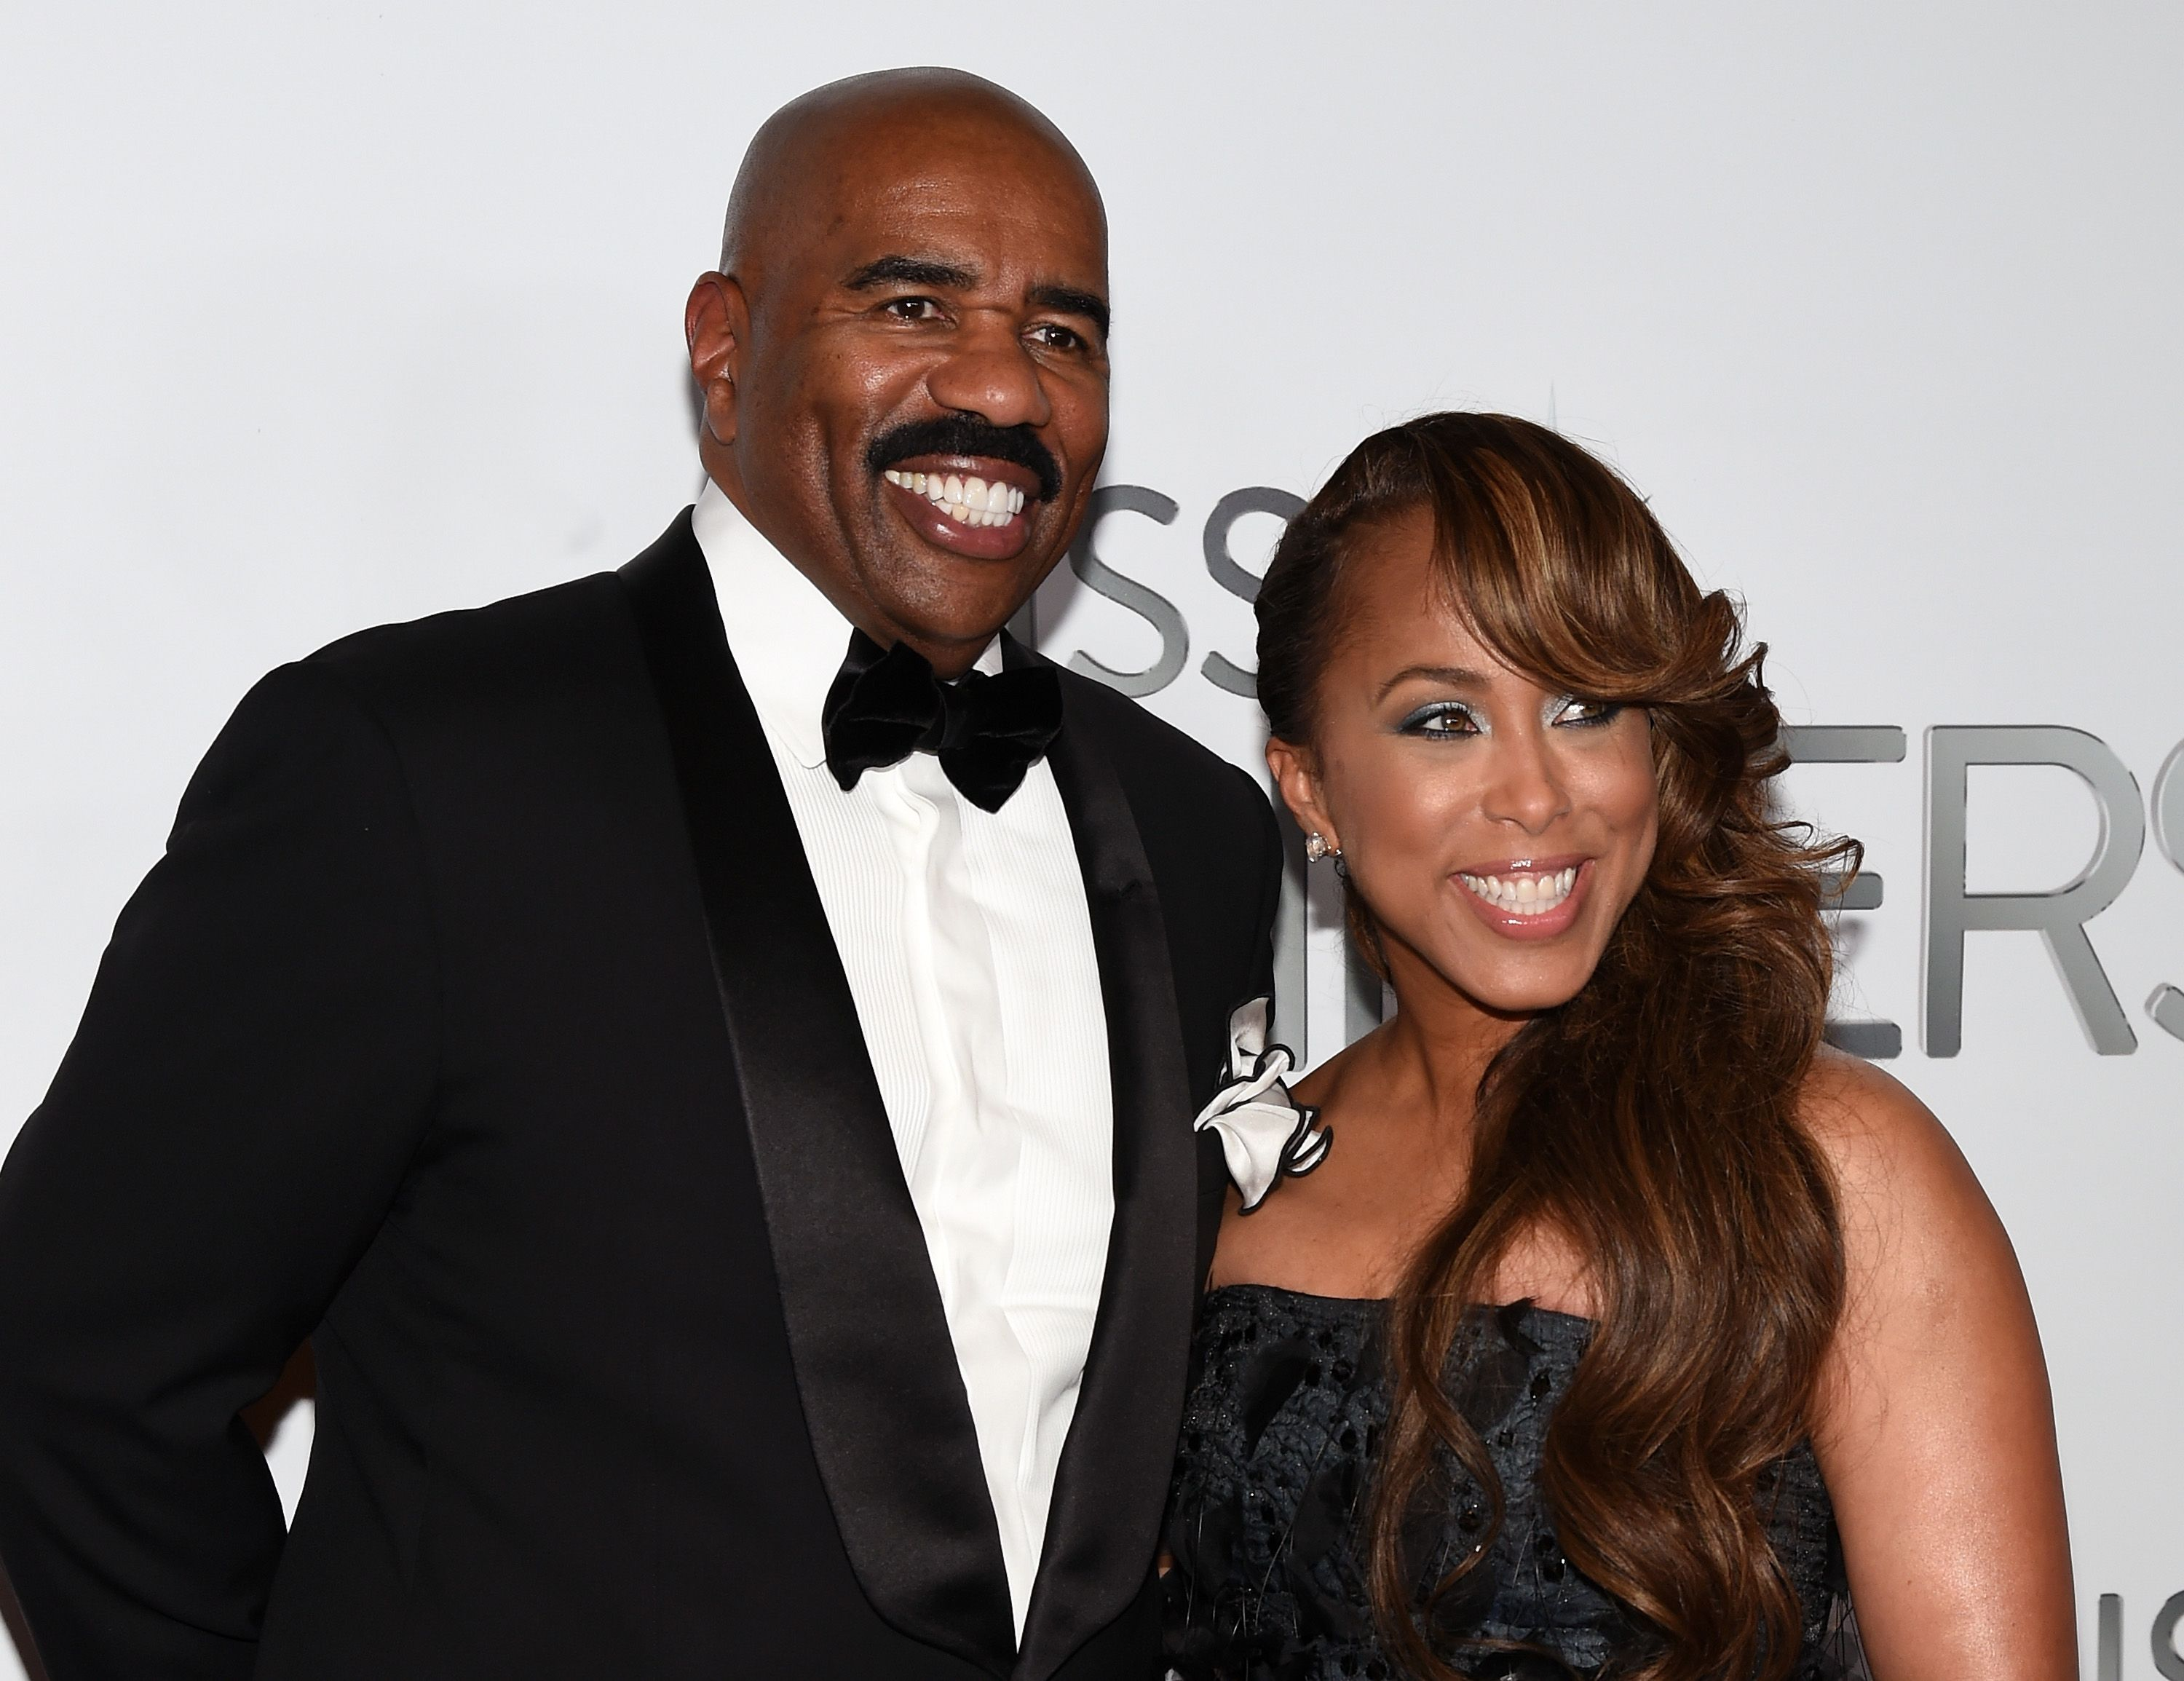 Steve Harvey and Marjorie Harvey at the 2015 Miss Universe Pageant at Planet Hollywood Resort & Casino on December 20, 2015   Photo: Getty Images